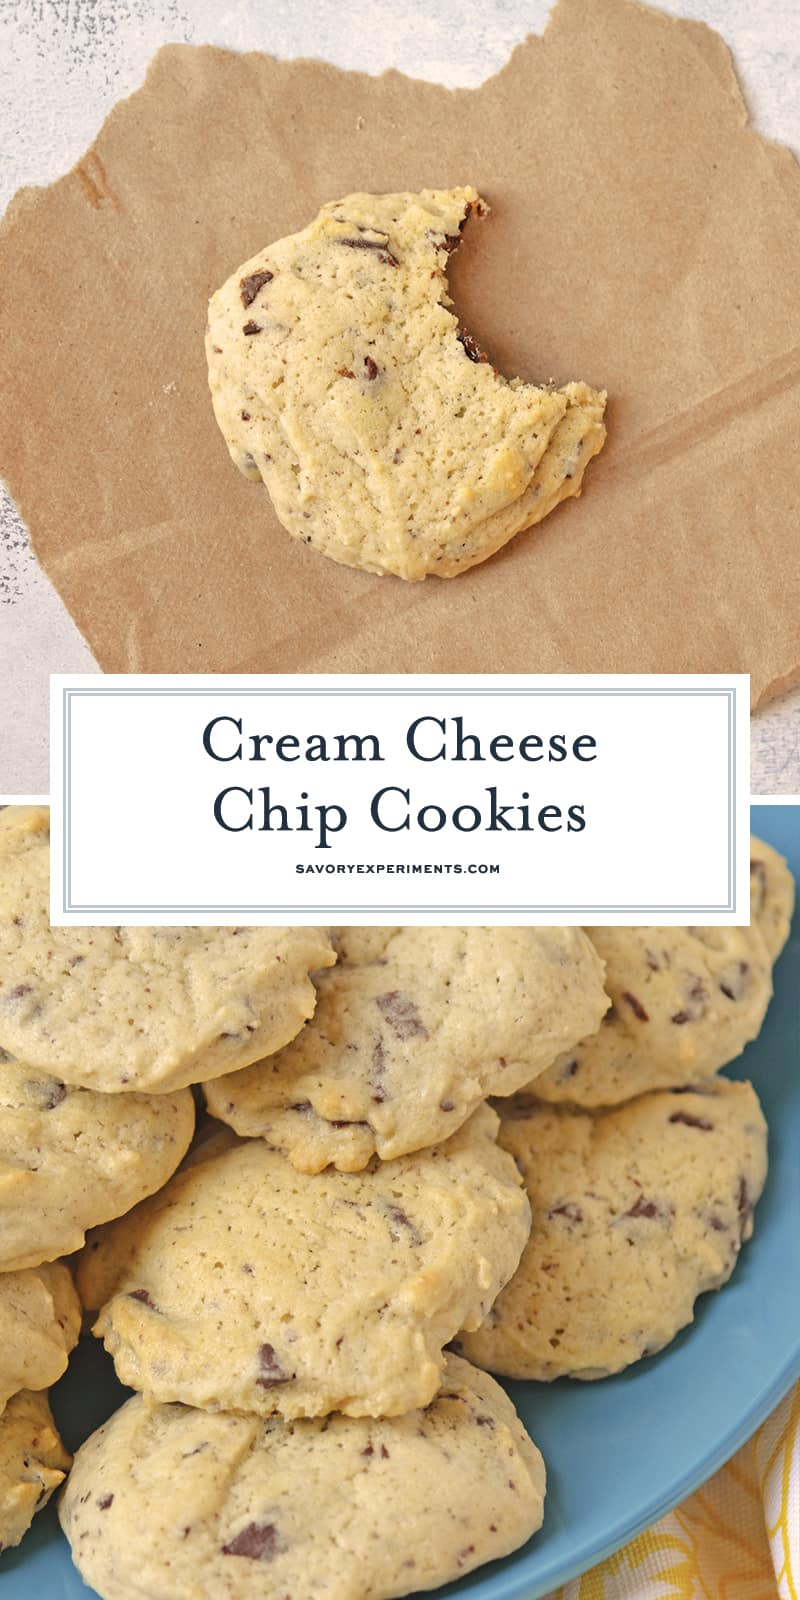 Cream Cheese Chocolate Chunk Cookies are a soft chocolate chip cookie recipe using rich cream cheese and rustic chunky chocolate.. #chocolatechipcookies #bestcookierecipe #softchocolatechipcookies www.savoryexperiments.com